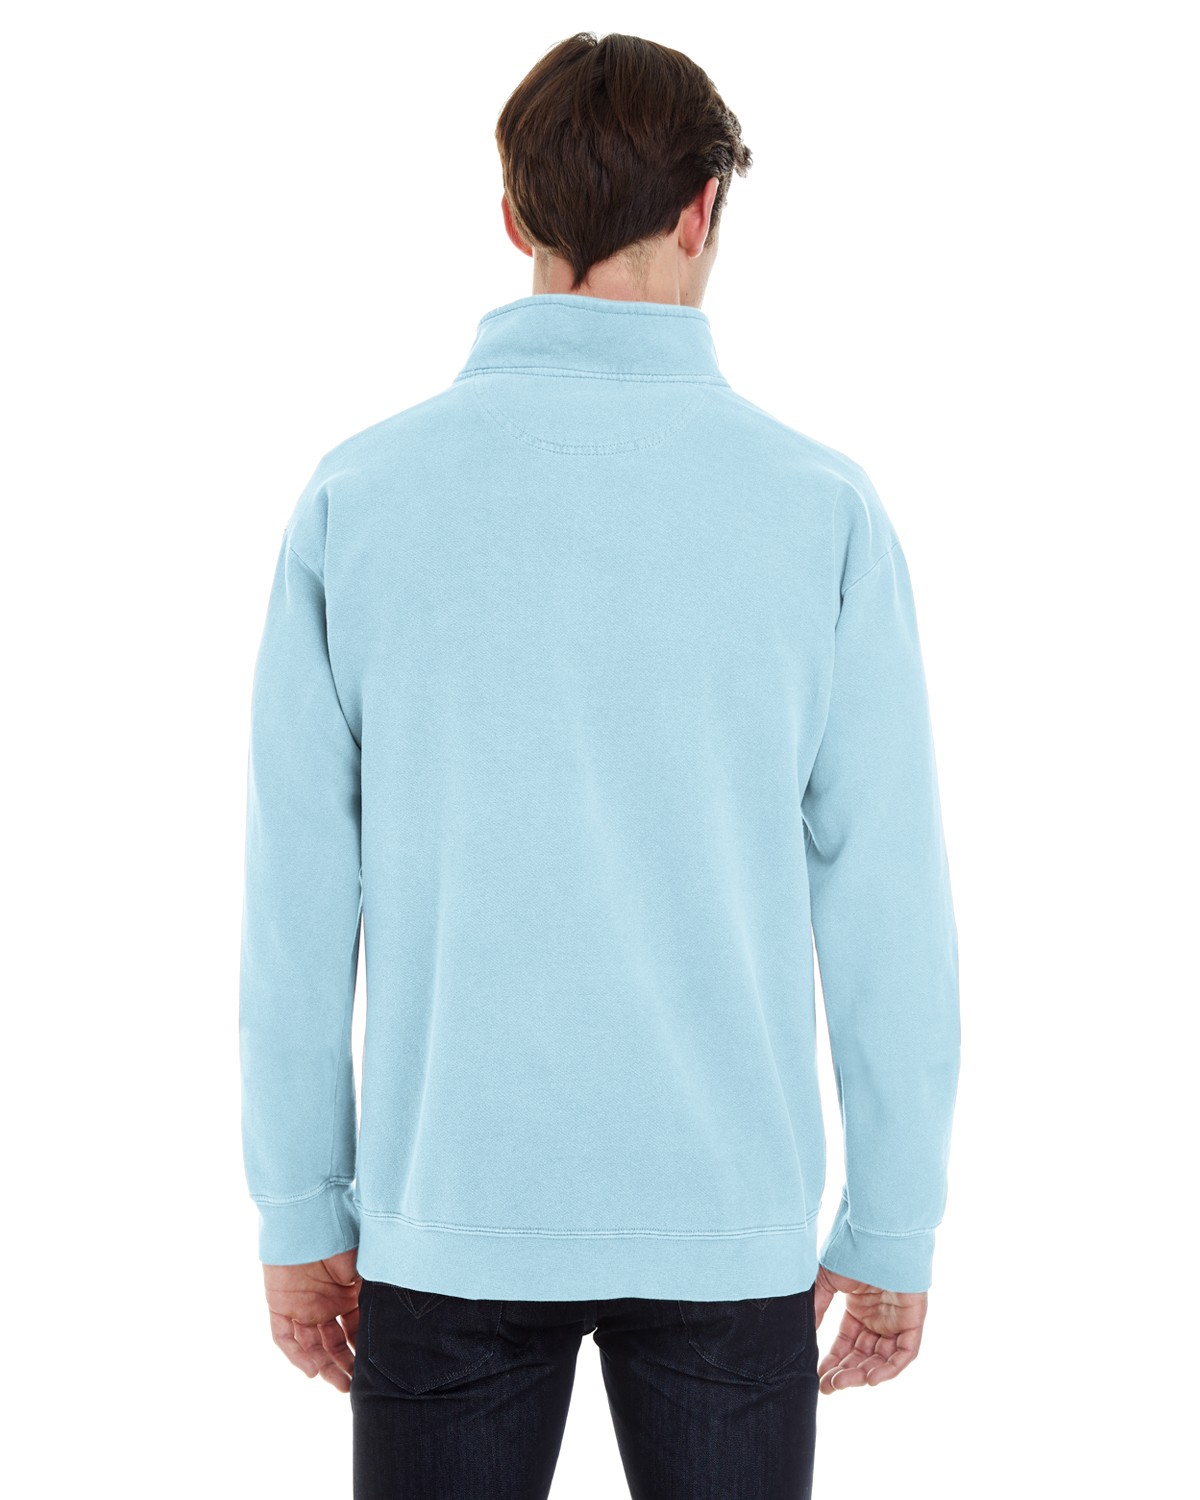 1580 Comfort Colors CHAMBRAY